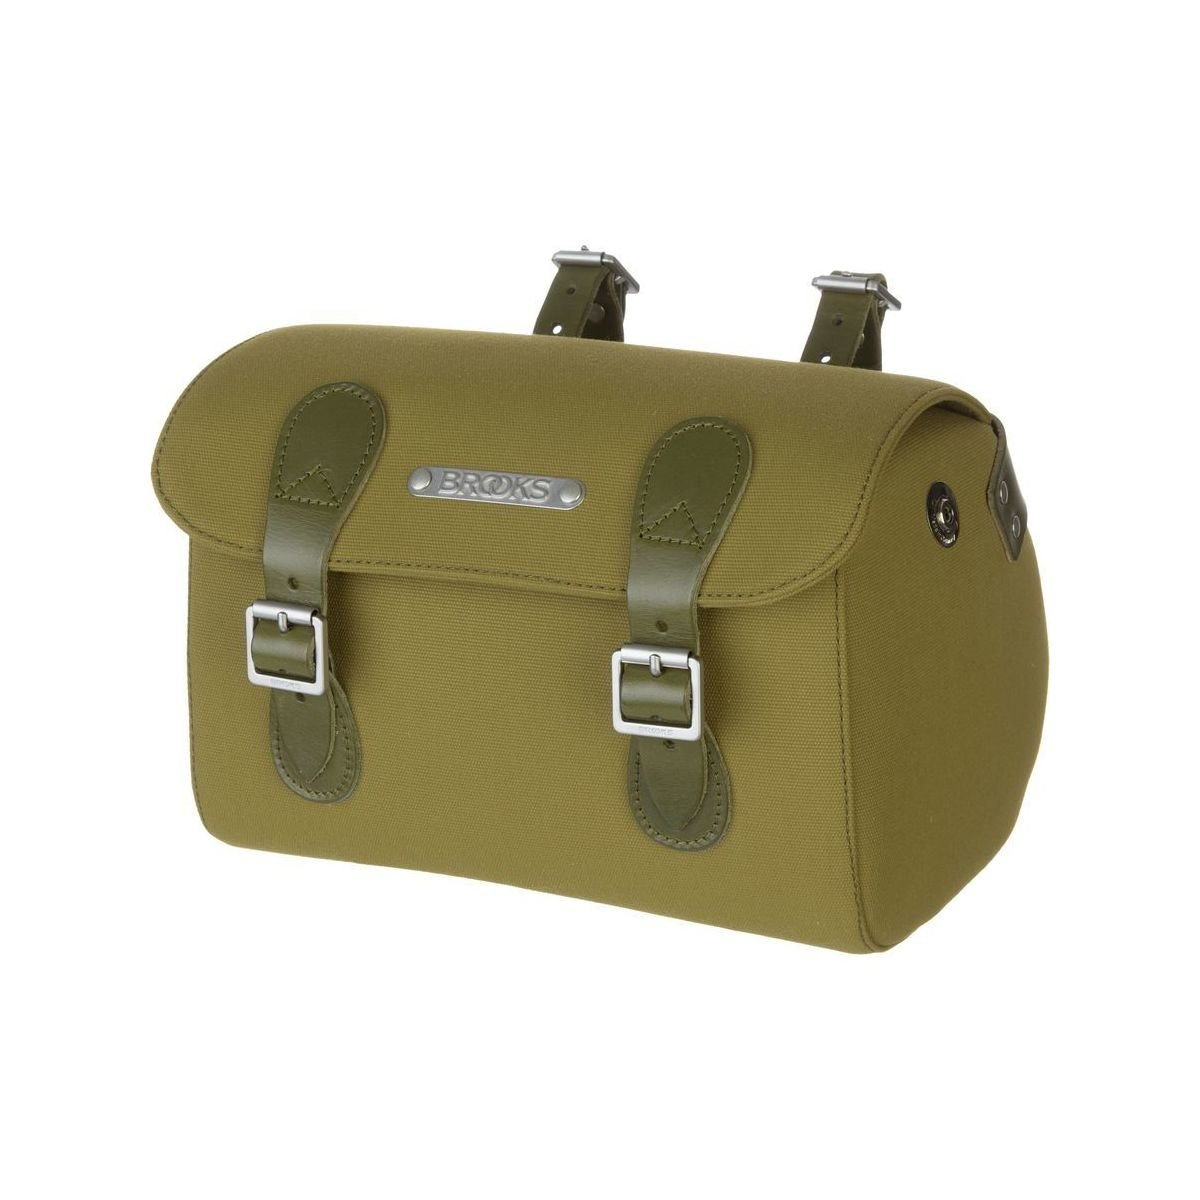 Brooks England Millbrook Holdall Green/Olive, One Size